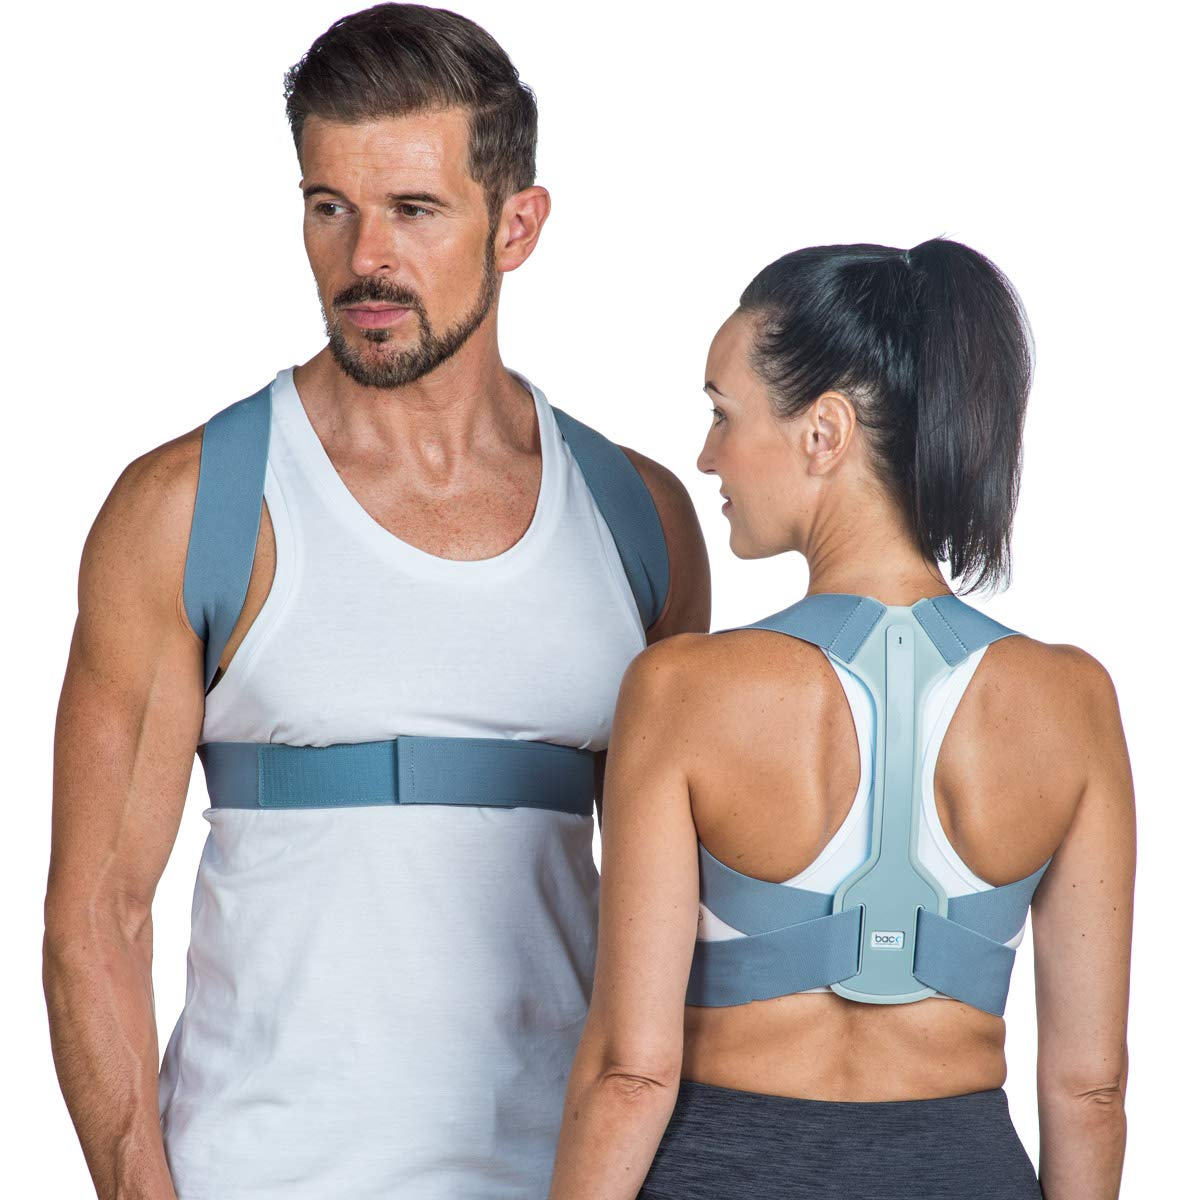 BACK Posture Corrector – Adjustable shoulder brace improves posture, prevents slouching and products back pain relief. (Large, Chest Approx 36-48 inches)